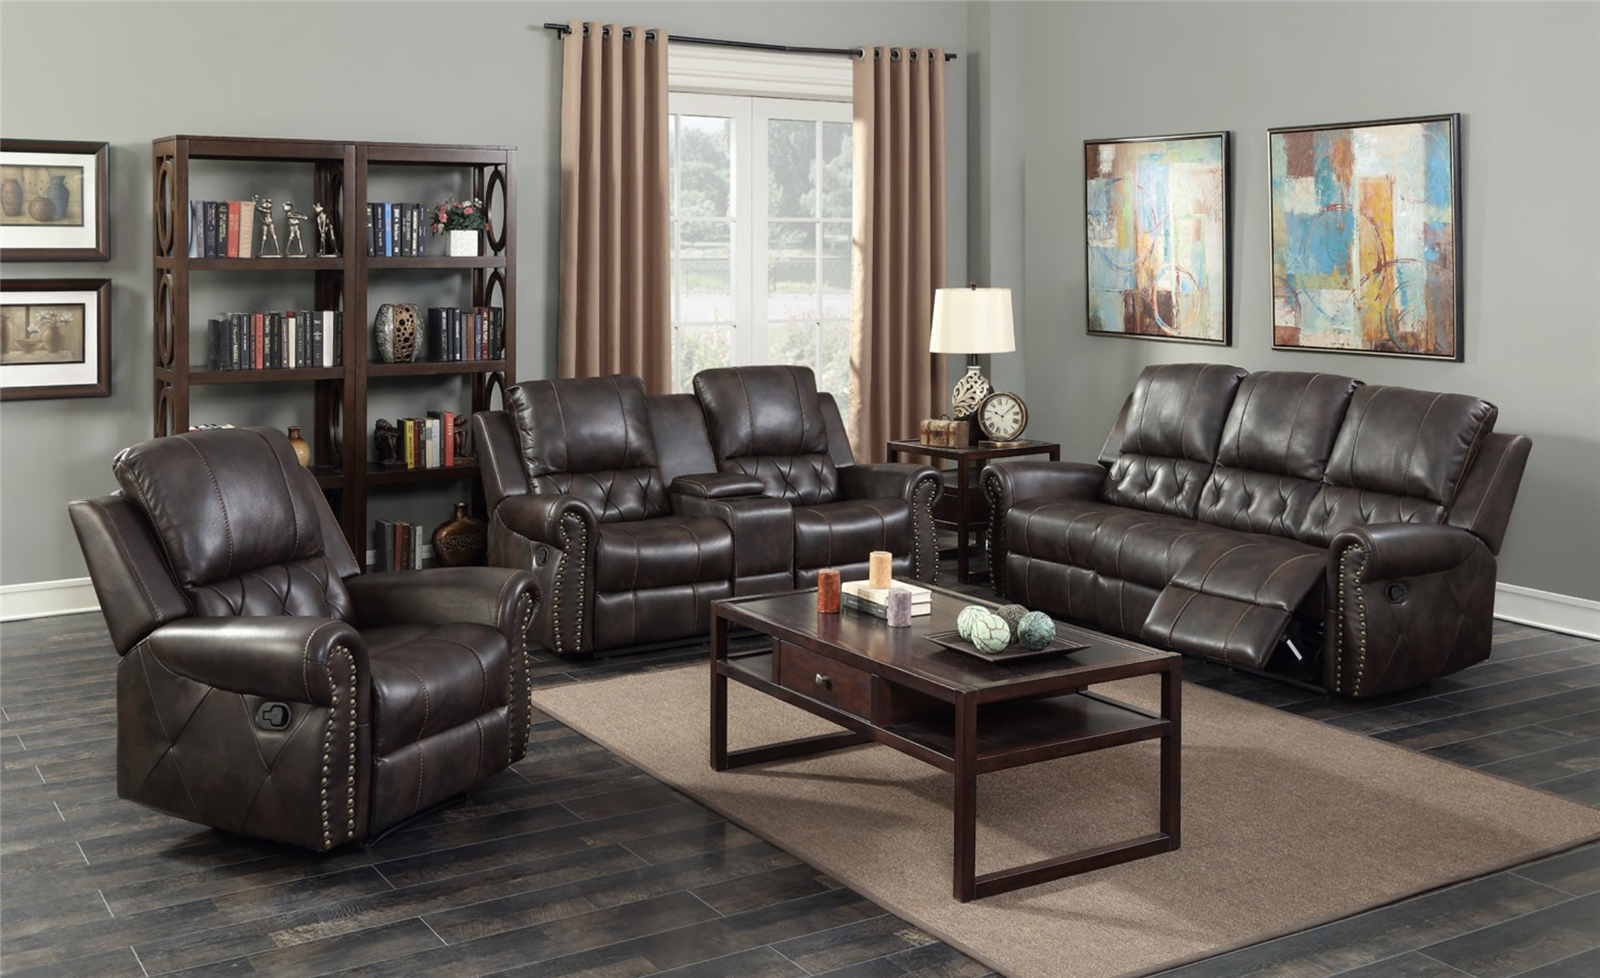 Dark Brown Tufted Leather Air Reclining